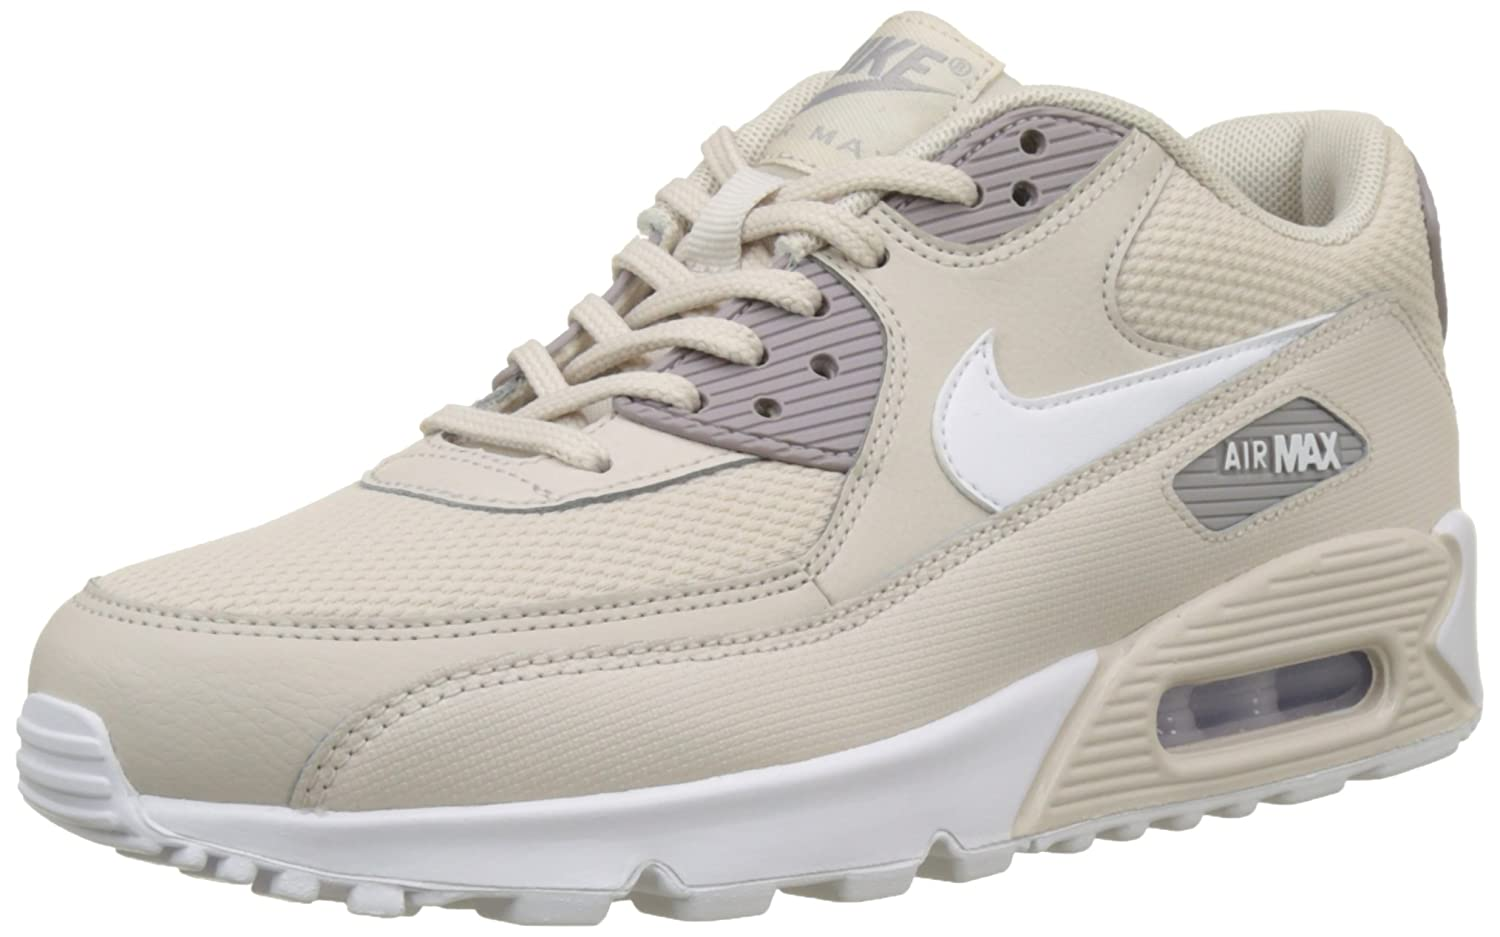 los angeles bb0a6 be275 Amazon.com   Nike Women s WMNS Air Max 90, Desert Sand White-Atmosphere  Grey, 7.5 US   Road Running